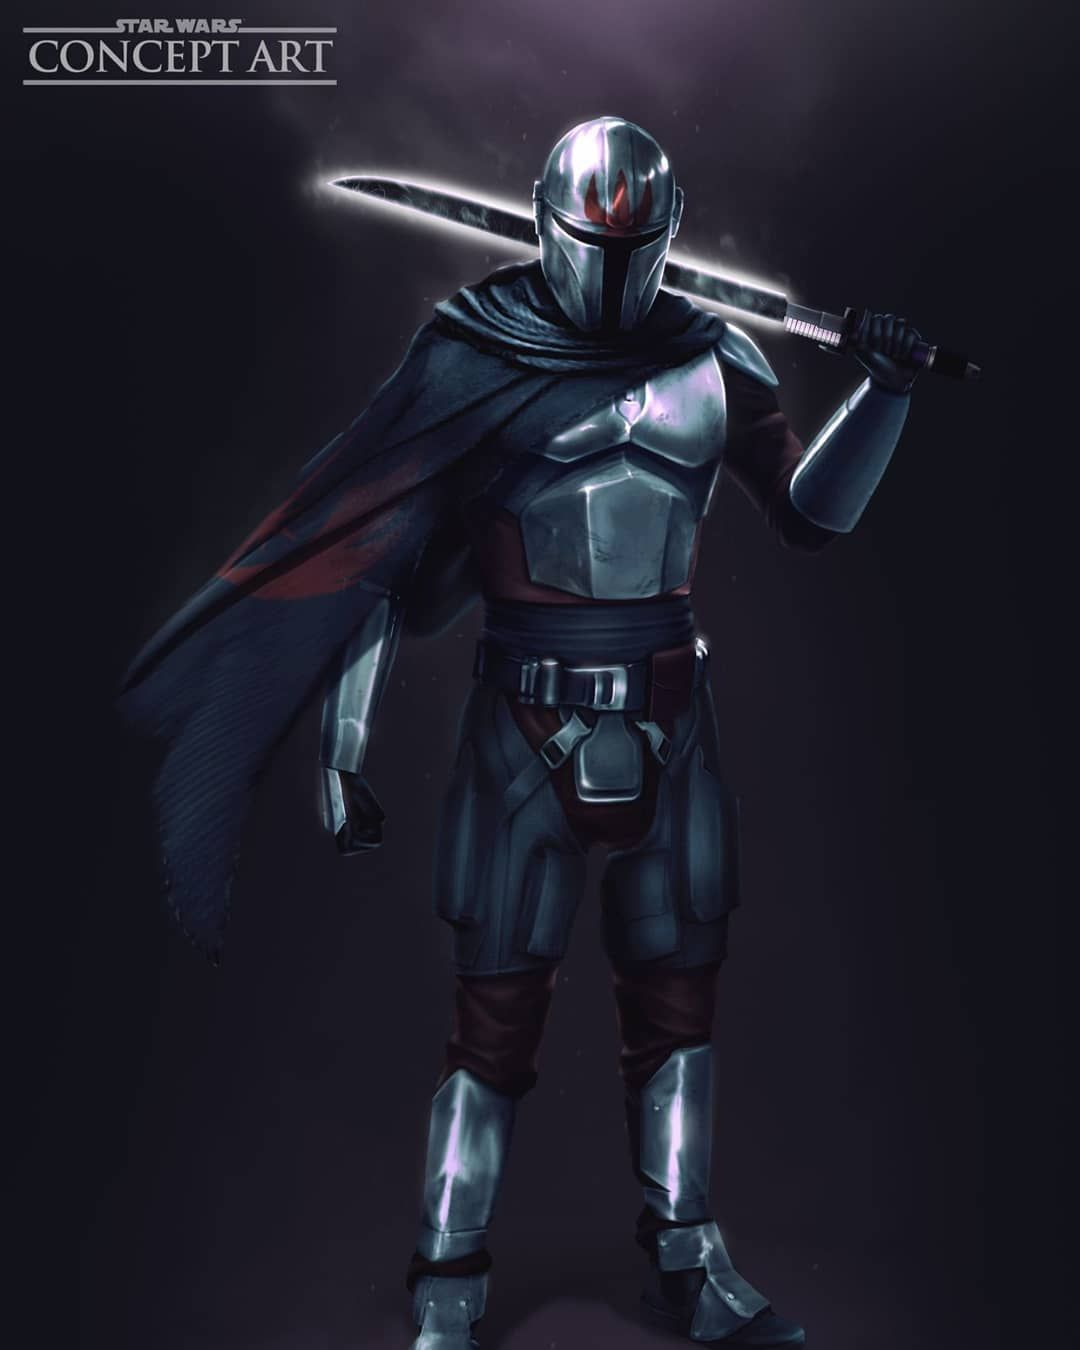 The Star Wars Guys On Instagram Fan Art Of Tarre Vizsla By Hk17 On Deviantart This Charact In 2020 Star Wars Characters Pictures Star Wars Pictures Star Wars Images